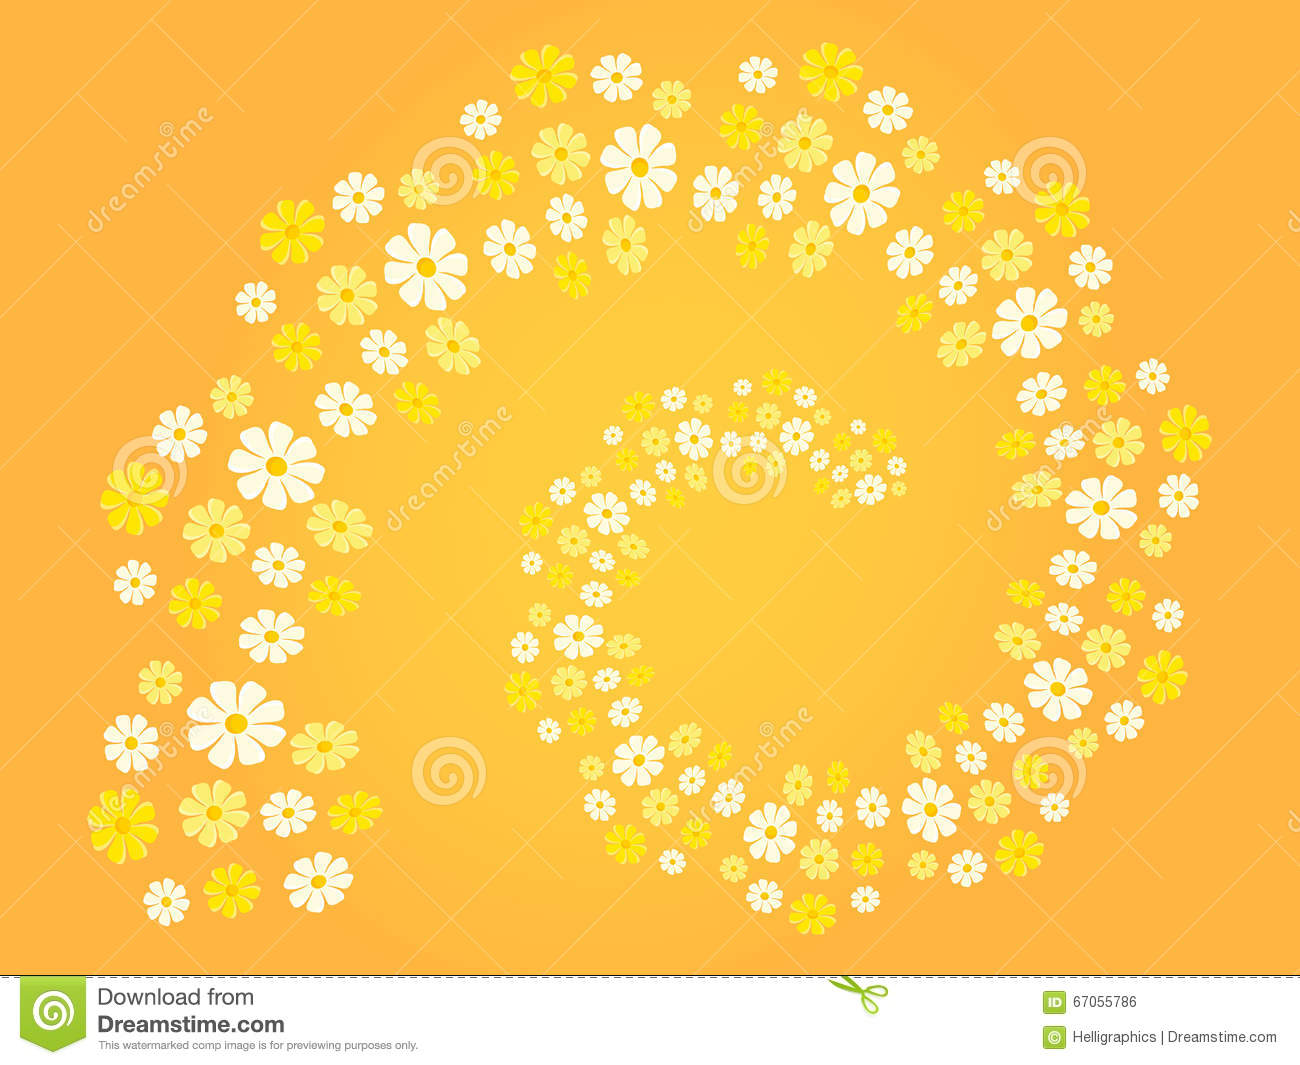 Different Shades Of Yellow flower spiral (flower swirl) in different shades of white, yellow